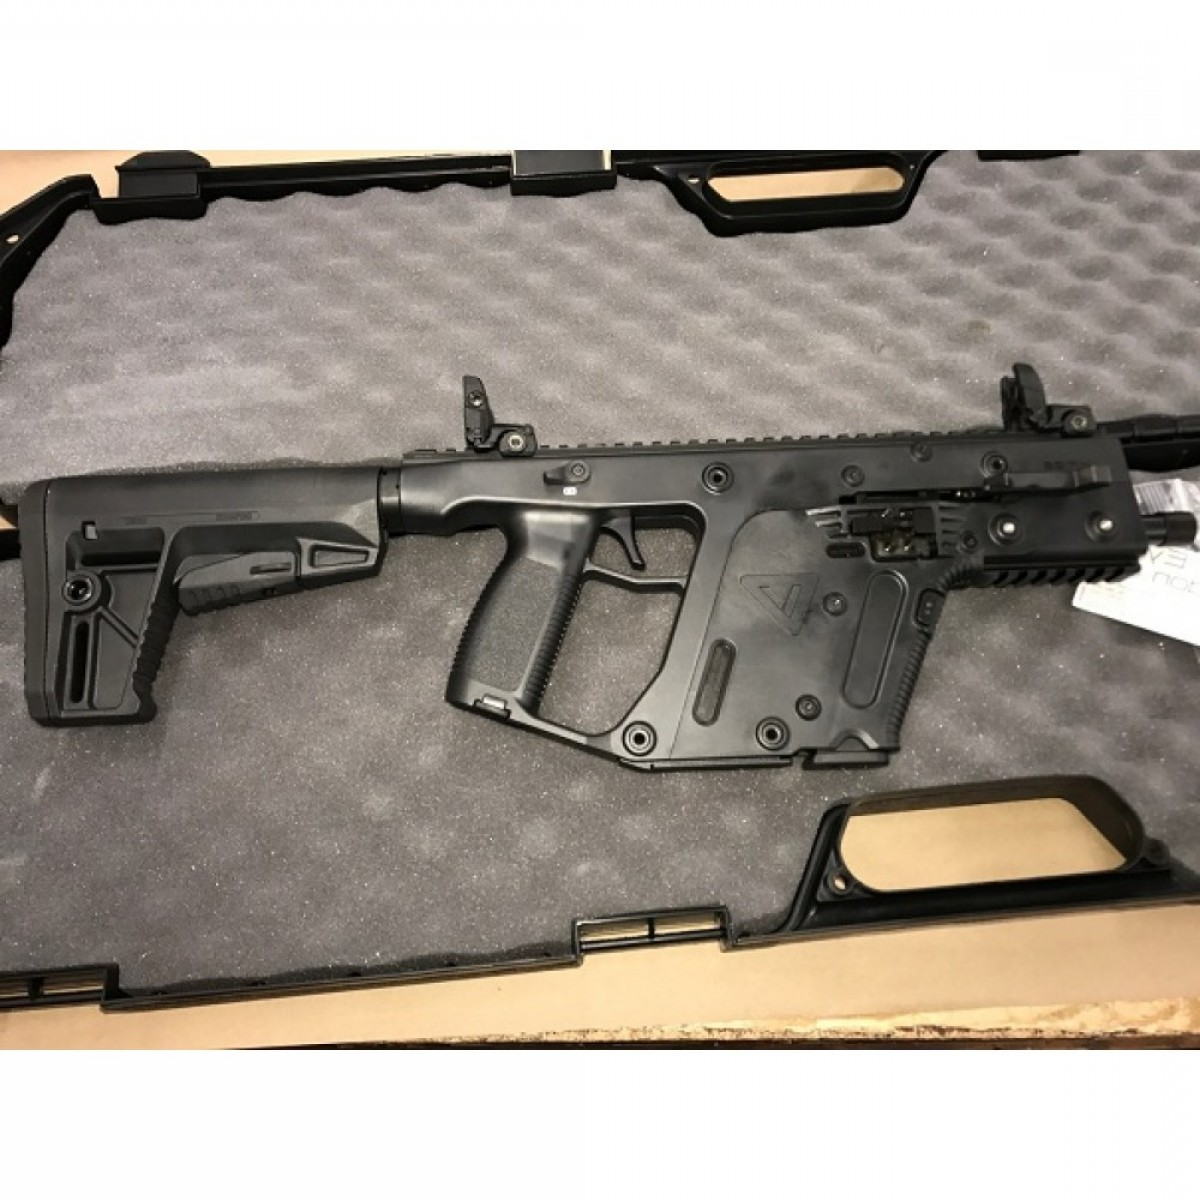 Kriss Vector Specs: Kriss Vector Gen Ii Sbr Semi Auto Rifle Mm Barrel M Stock Black Restricted